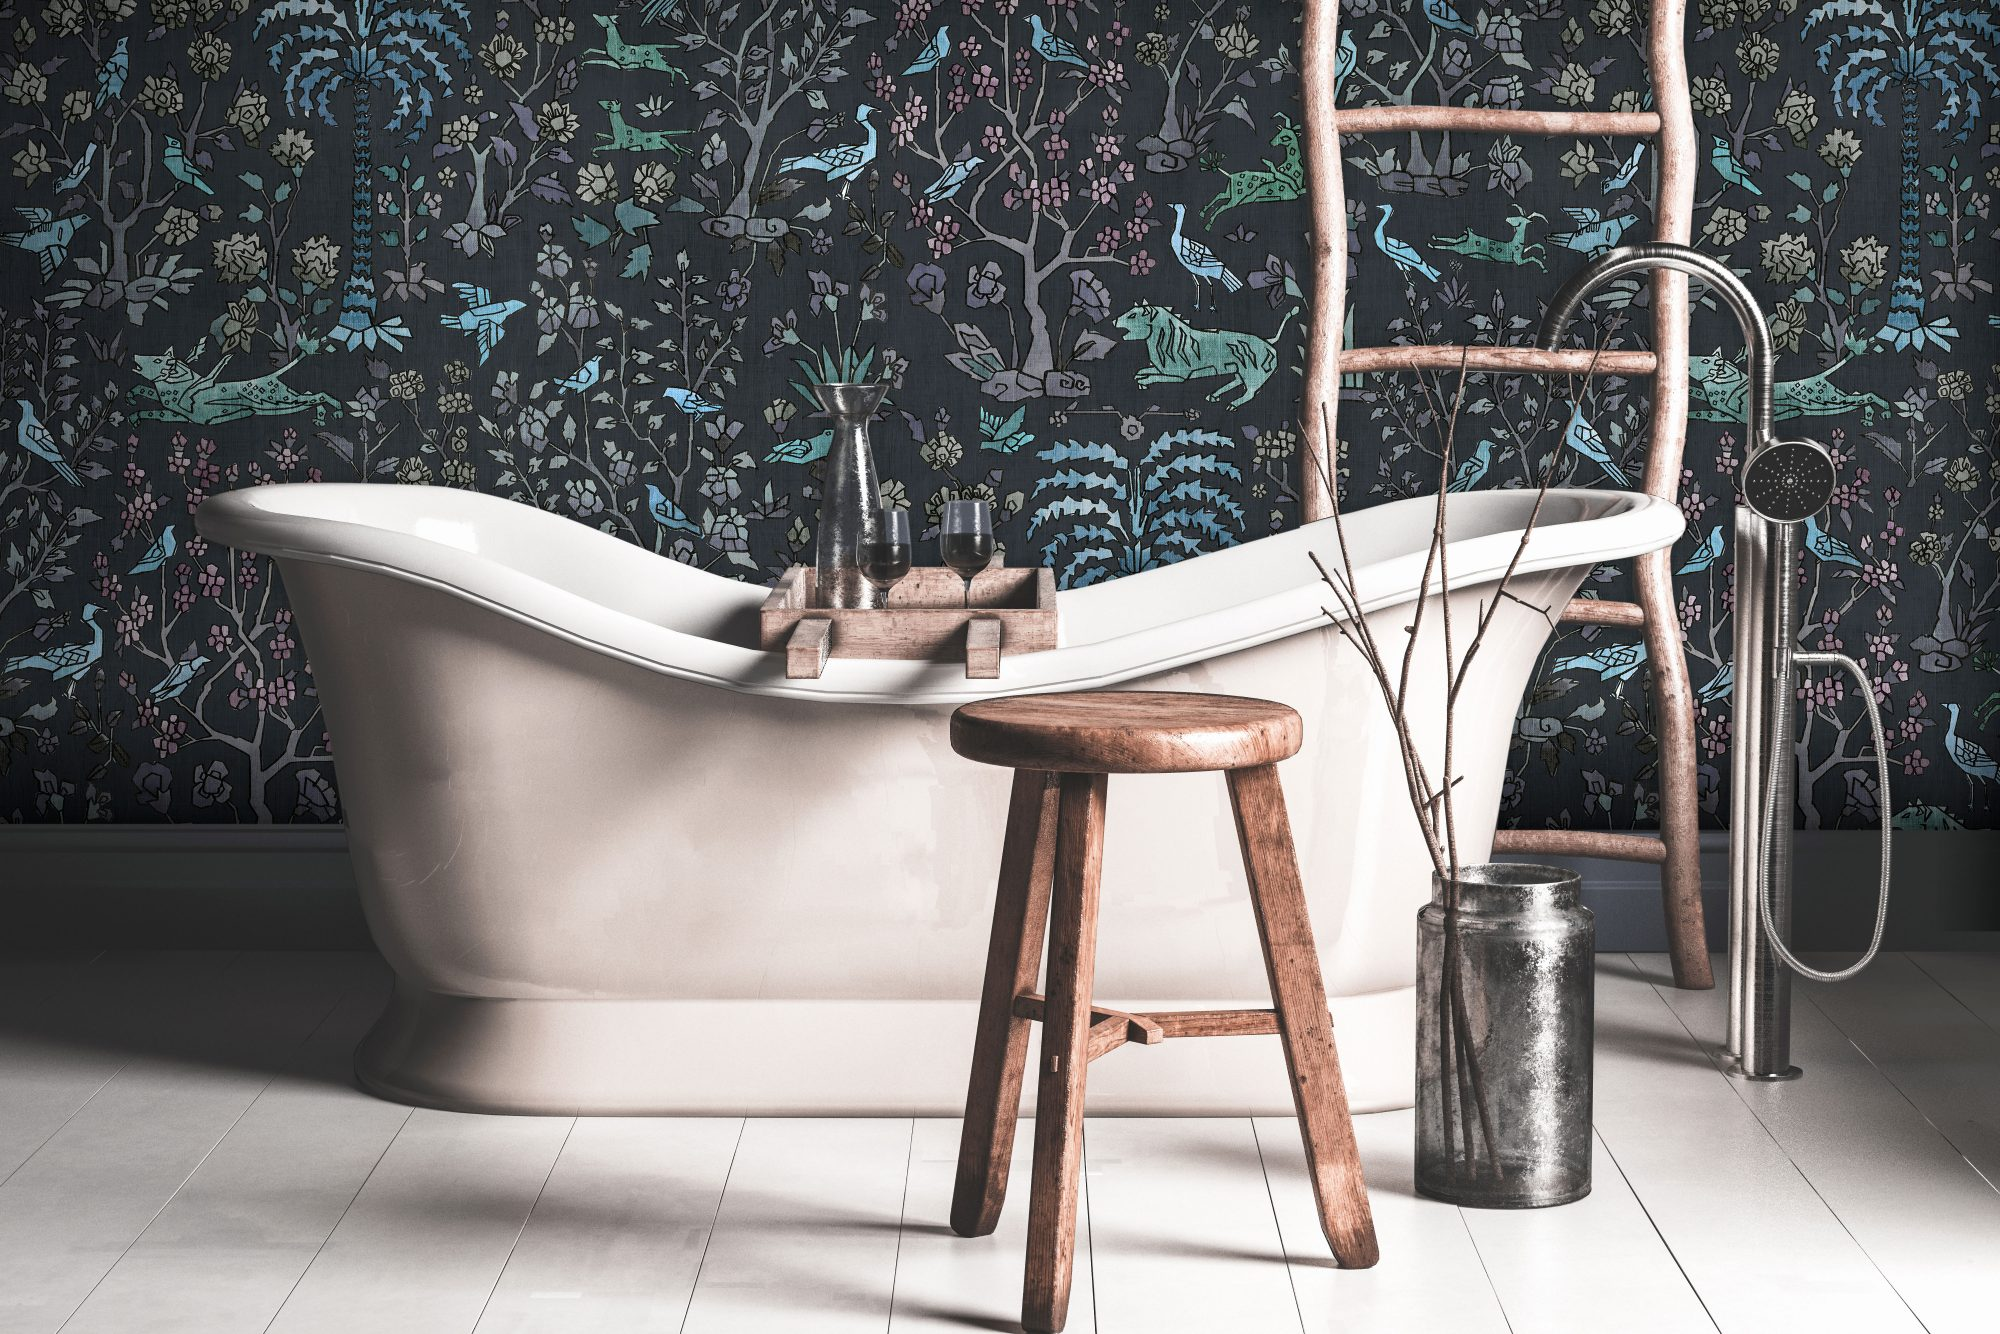 White Stand-Alone Bathtub with Dark Wallpaper Behind